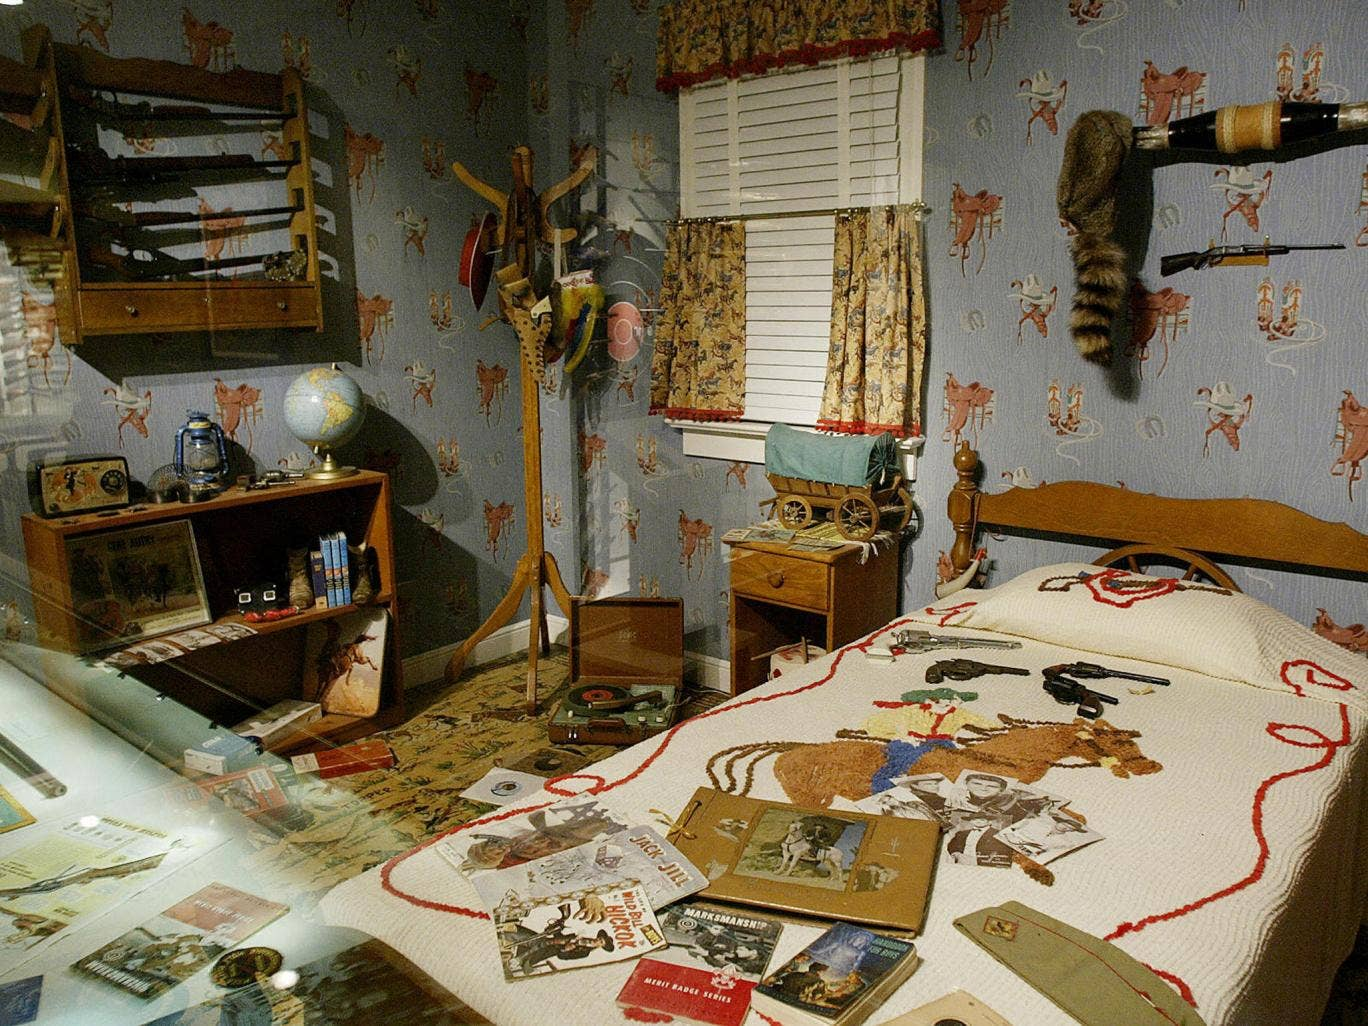 FAIRFAX, UNITED STATES: An exhibit showing a decades old boys room complete with toy guns on the bed and real guns designed for children on the wall